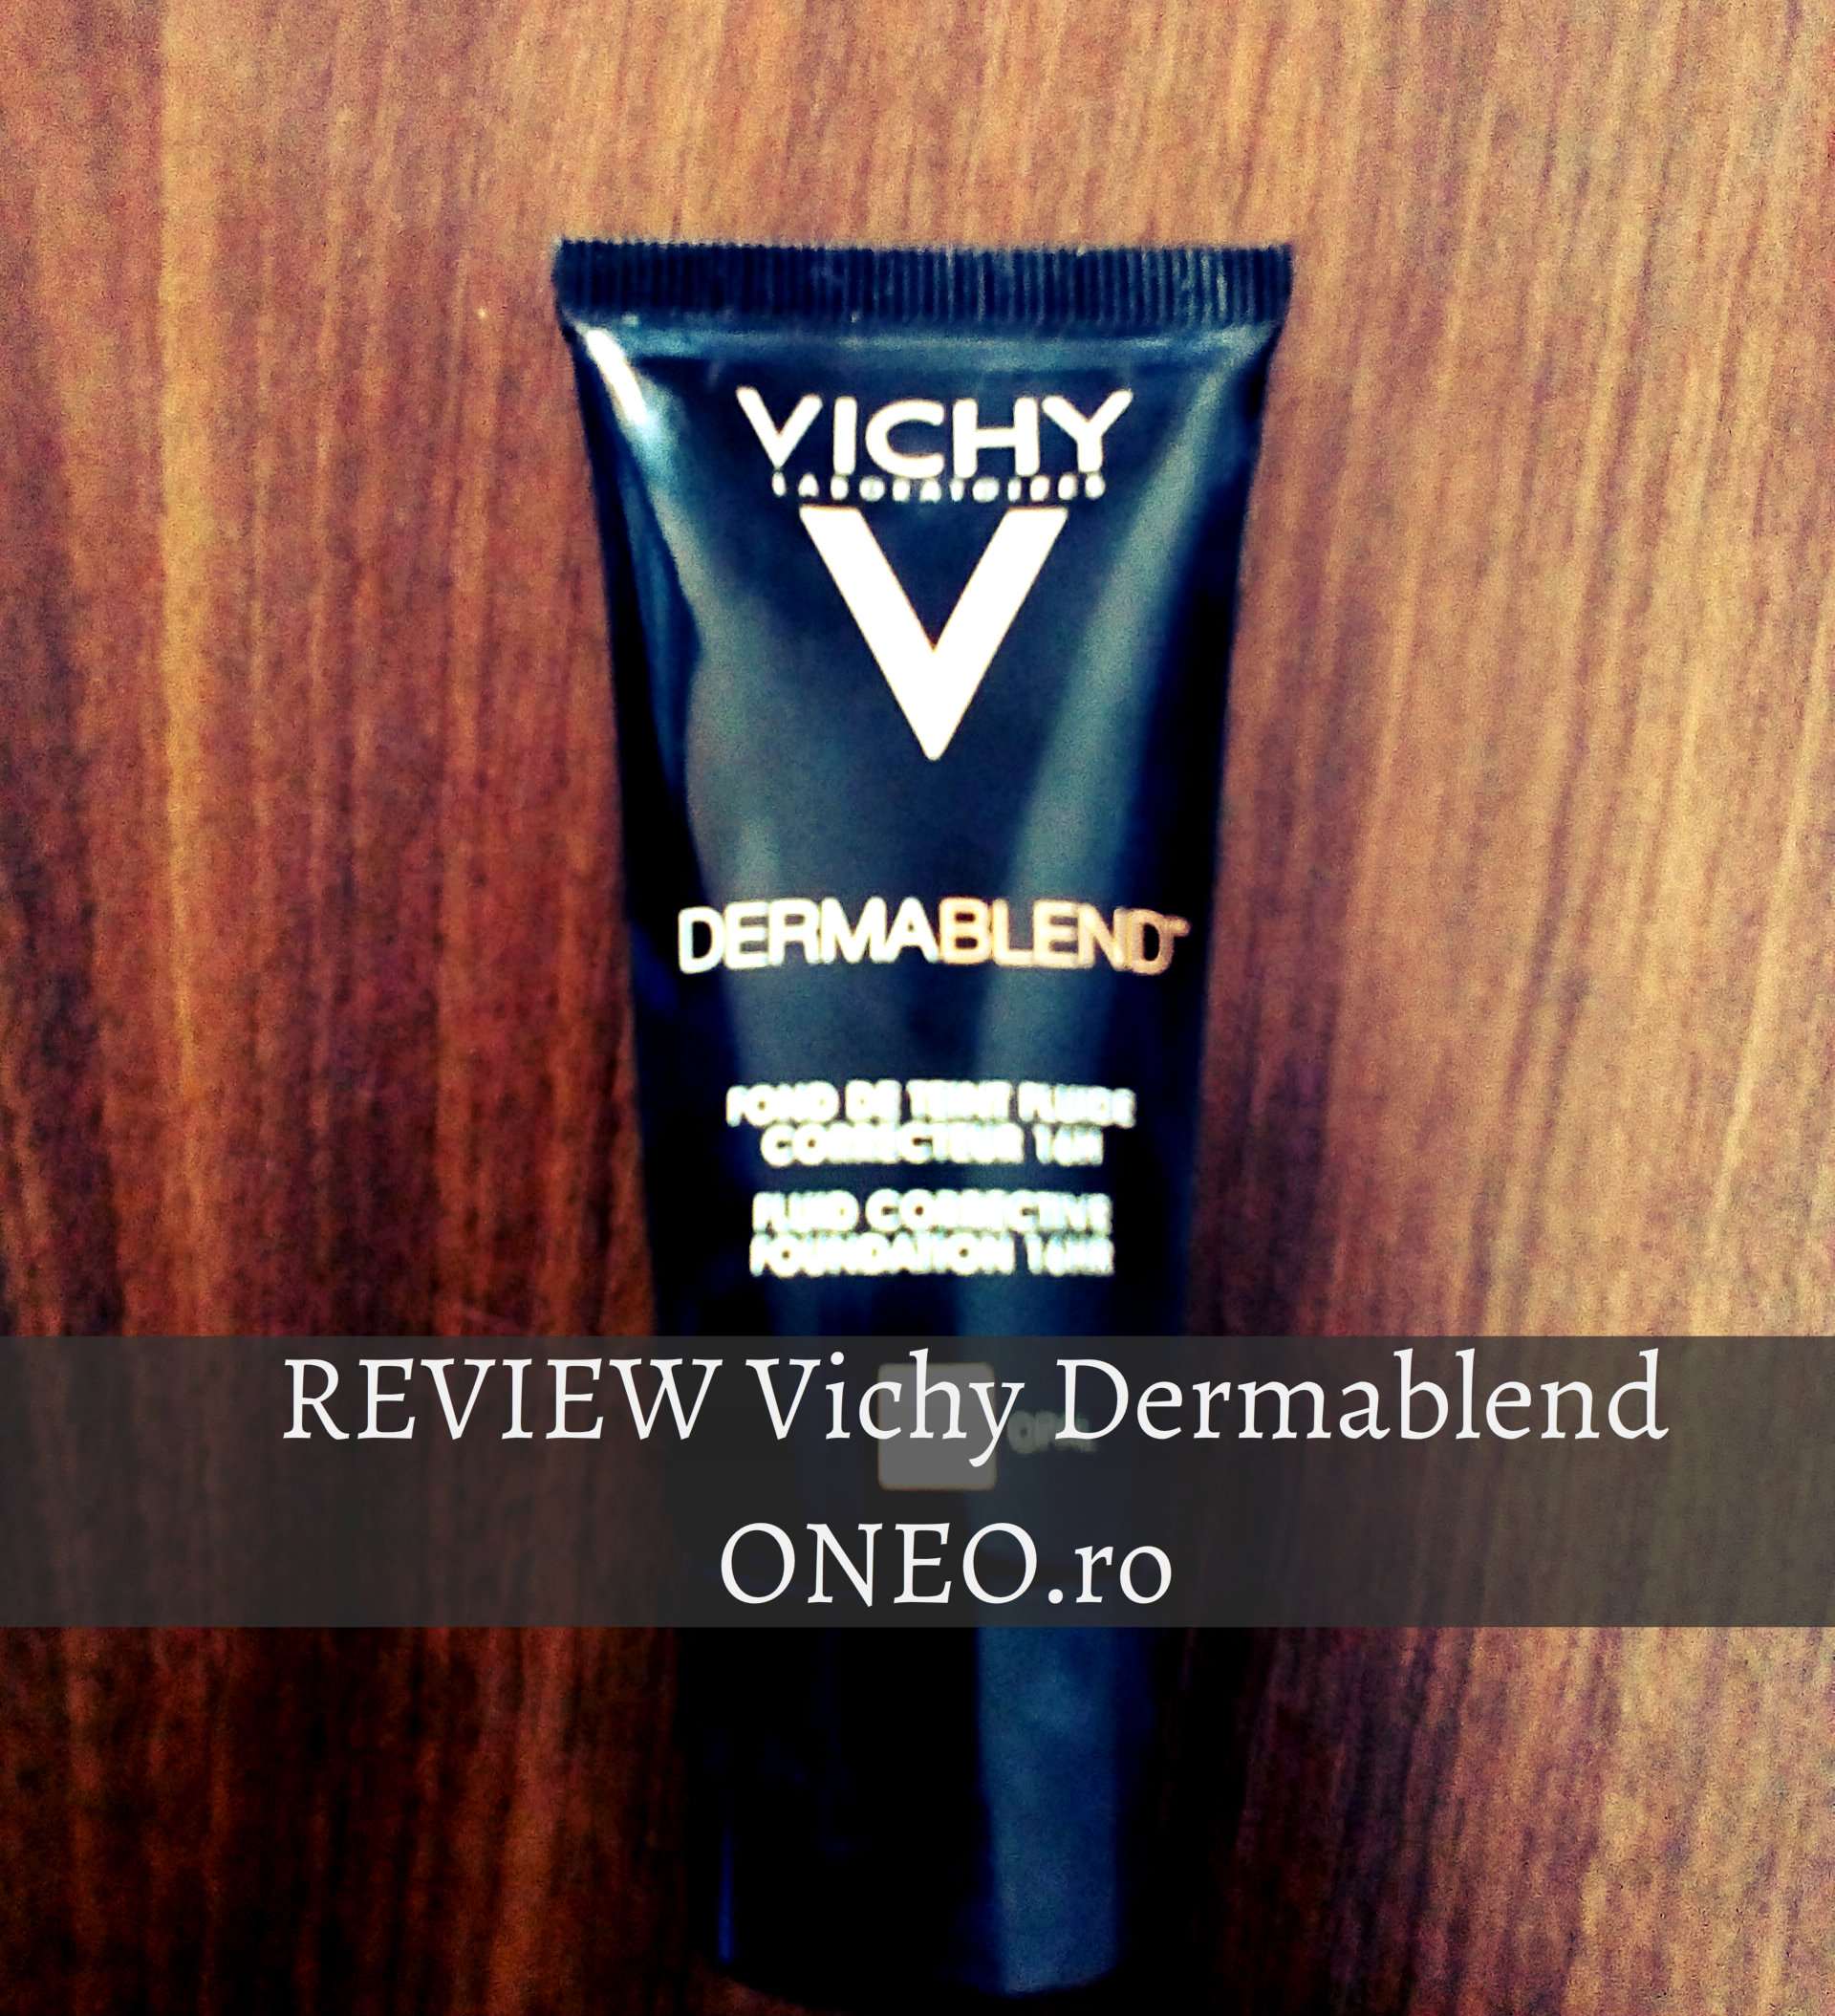 review vichy dermablend